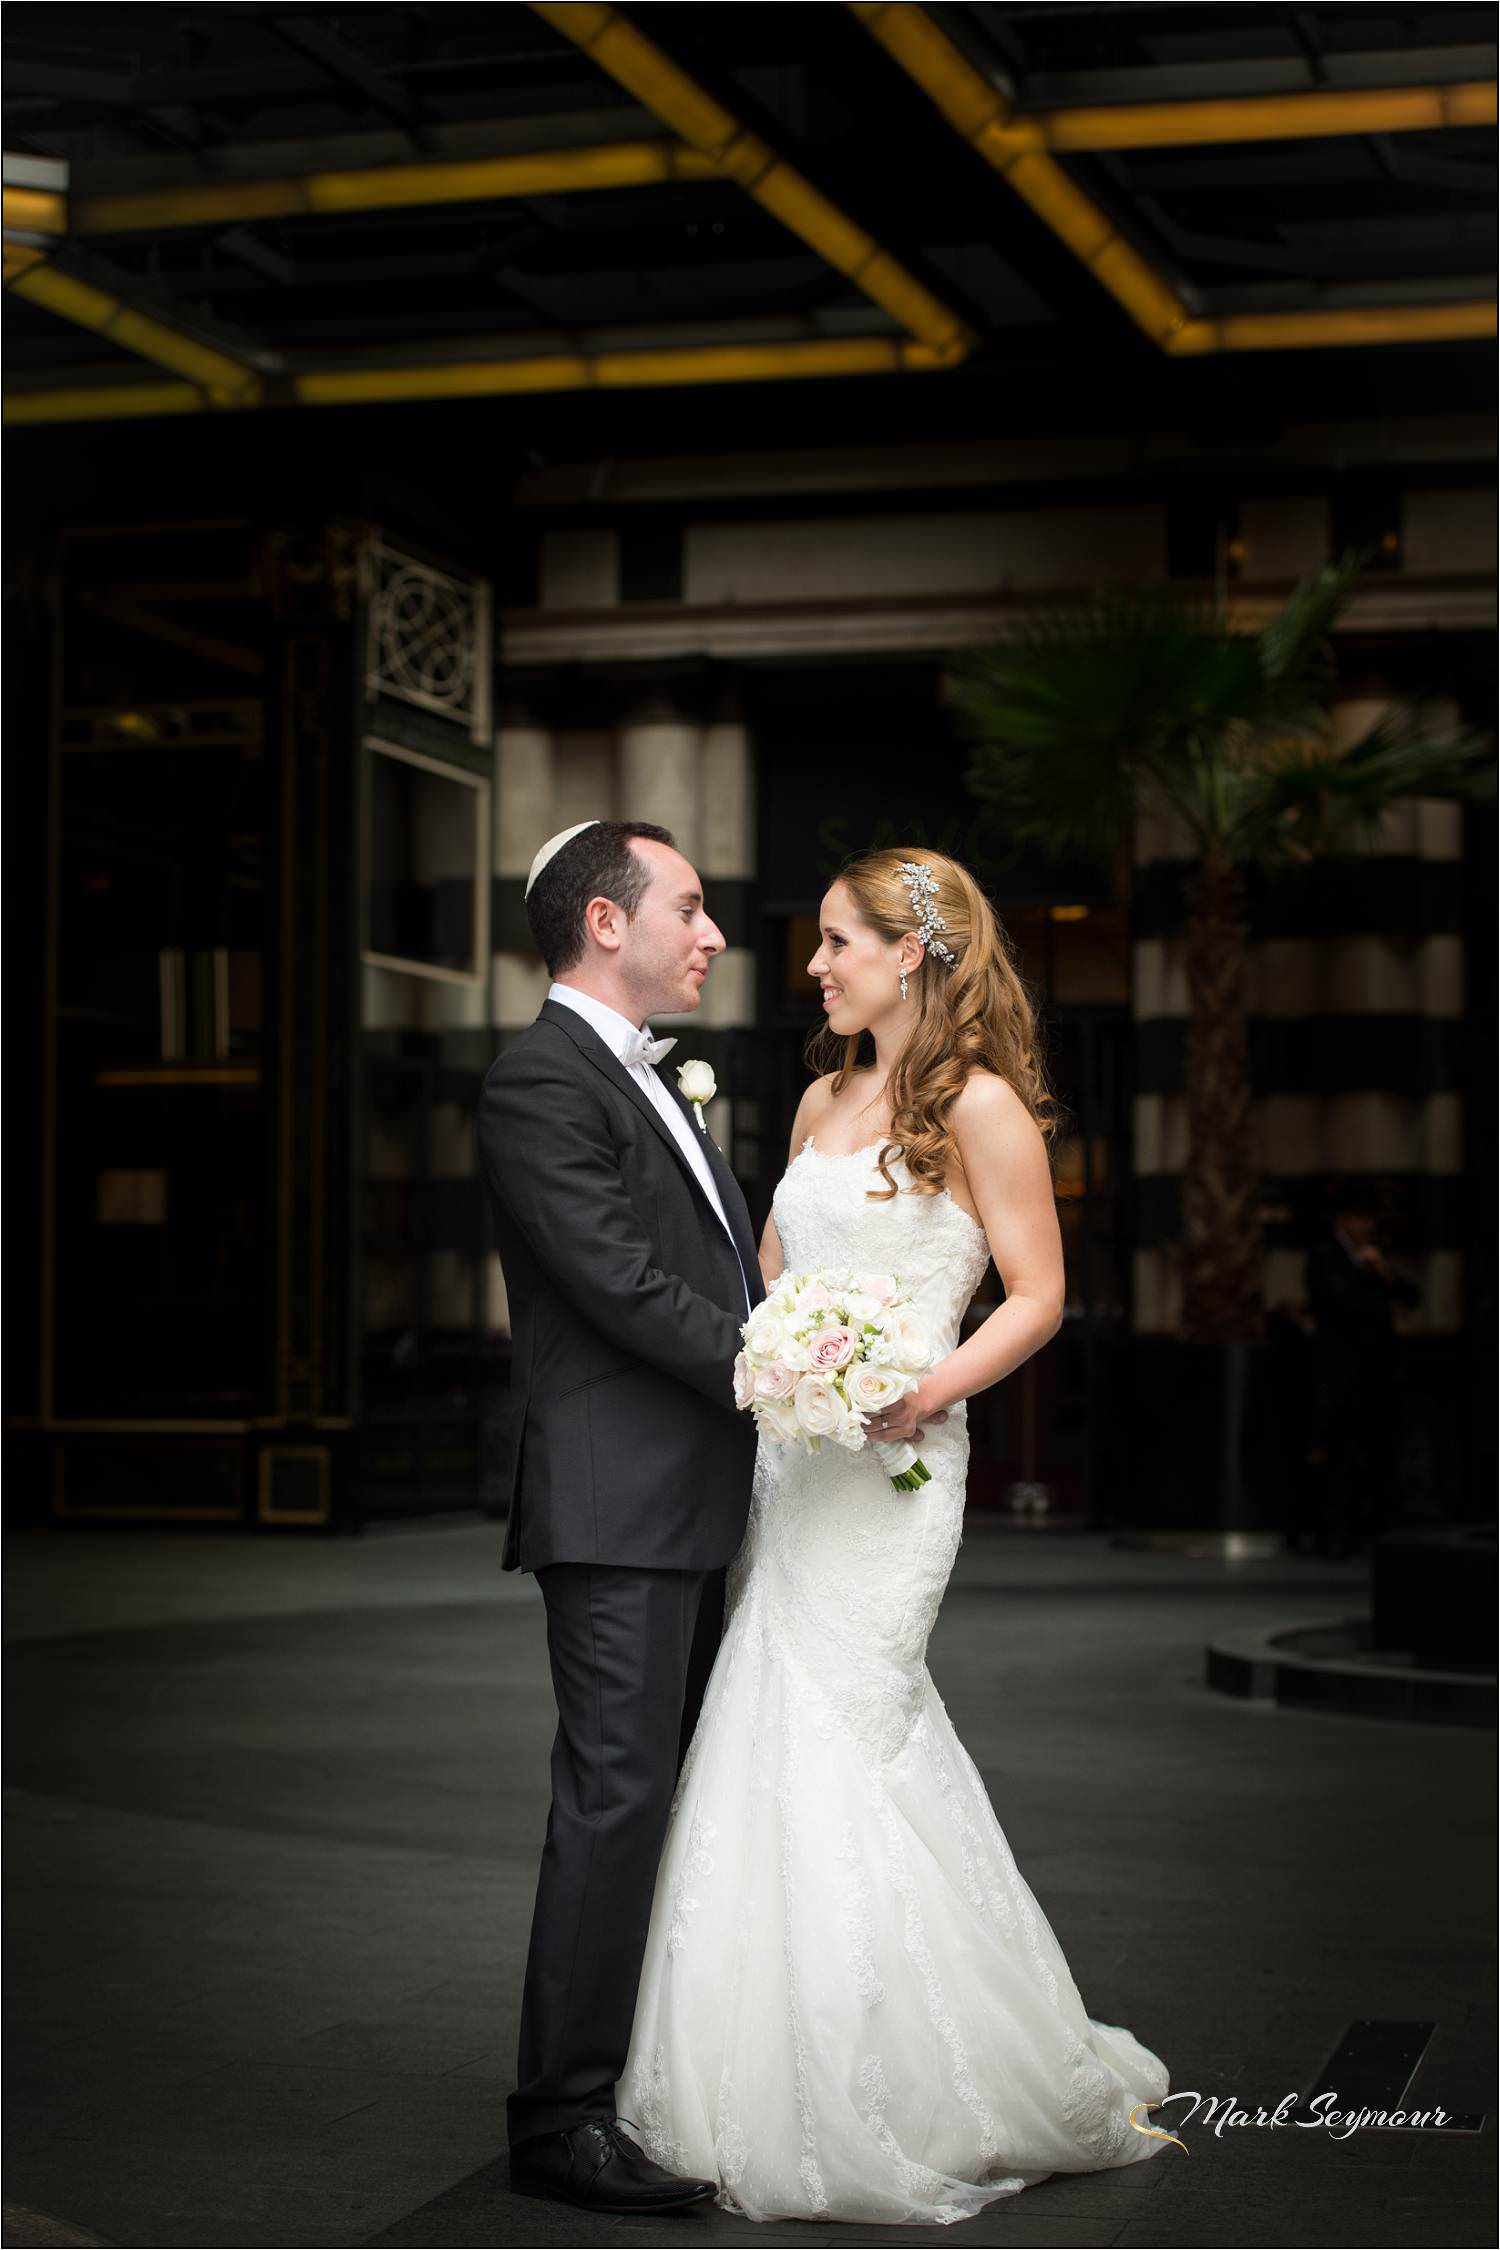 Bride and Groom at The Savoy